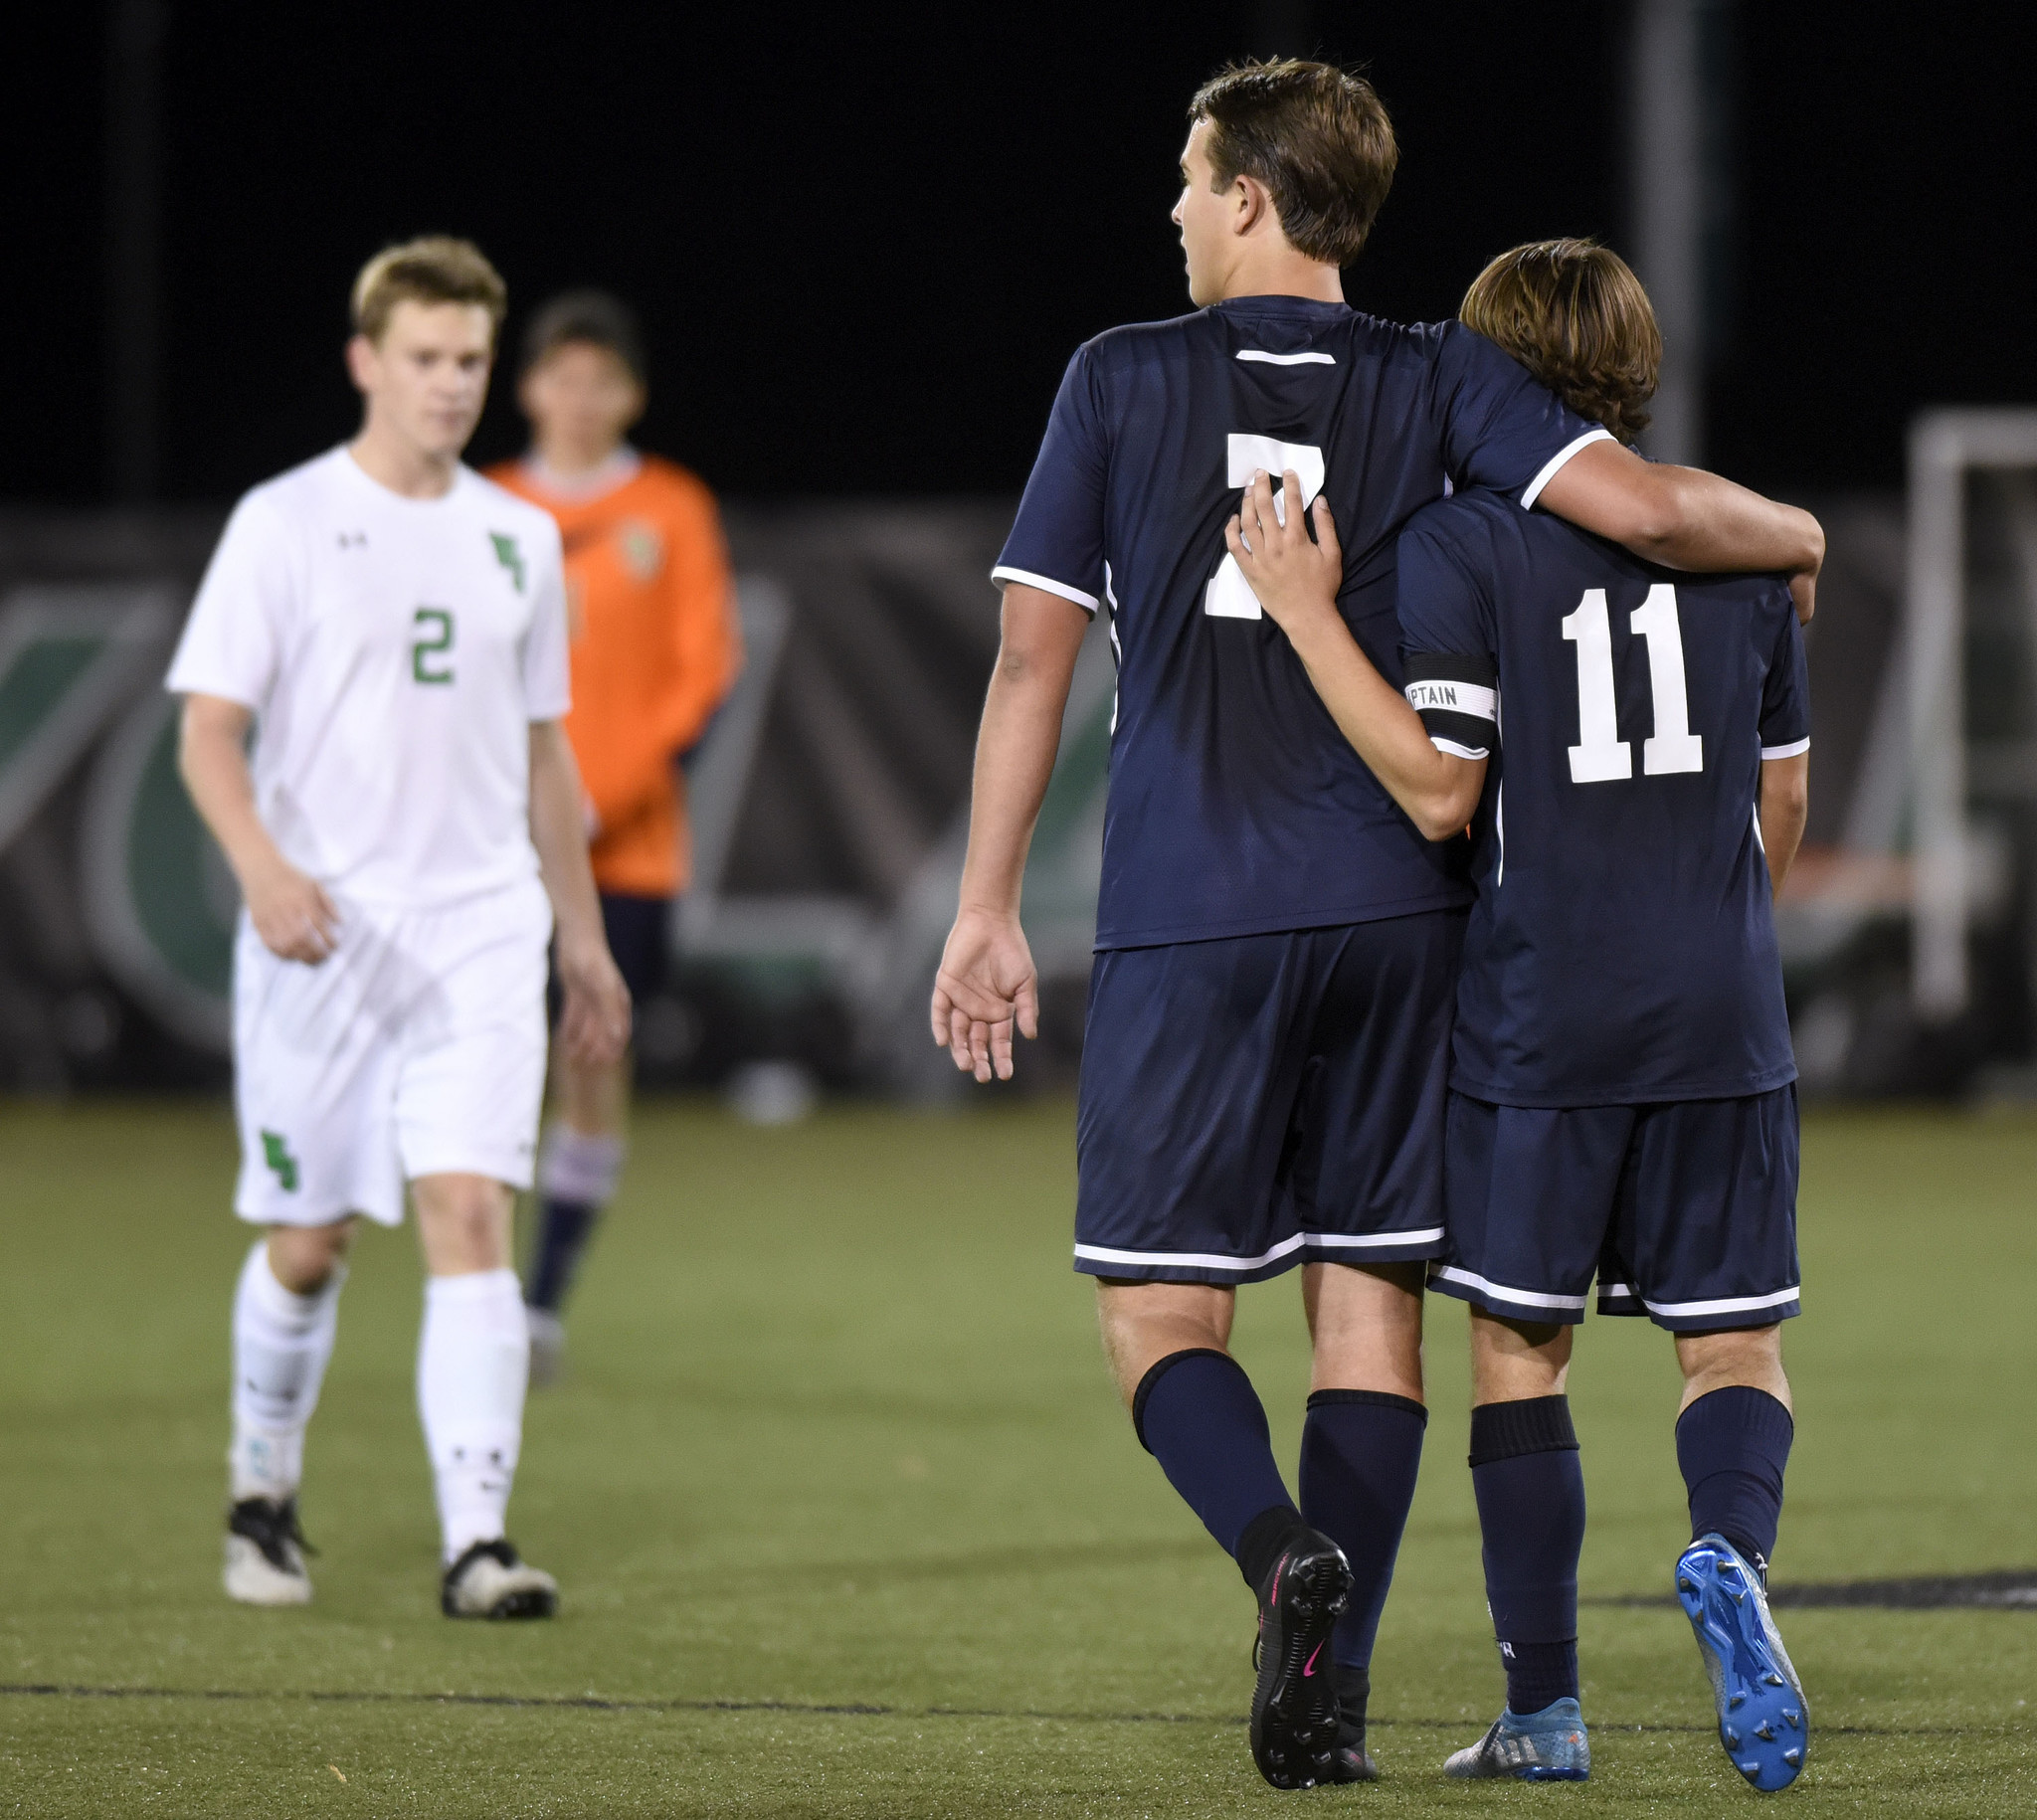 7f5f34fceec3 Bel Air vs Walter Johnson boys soccer - Baltimore Sun